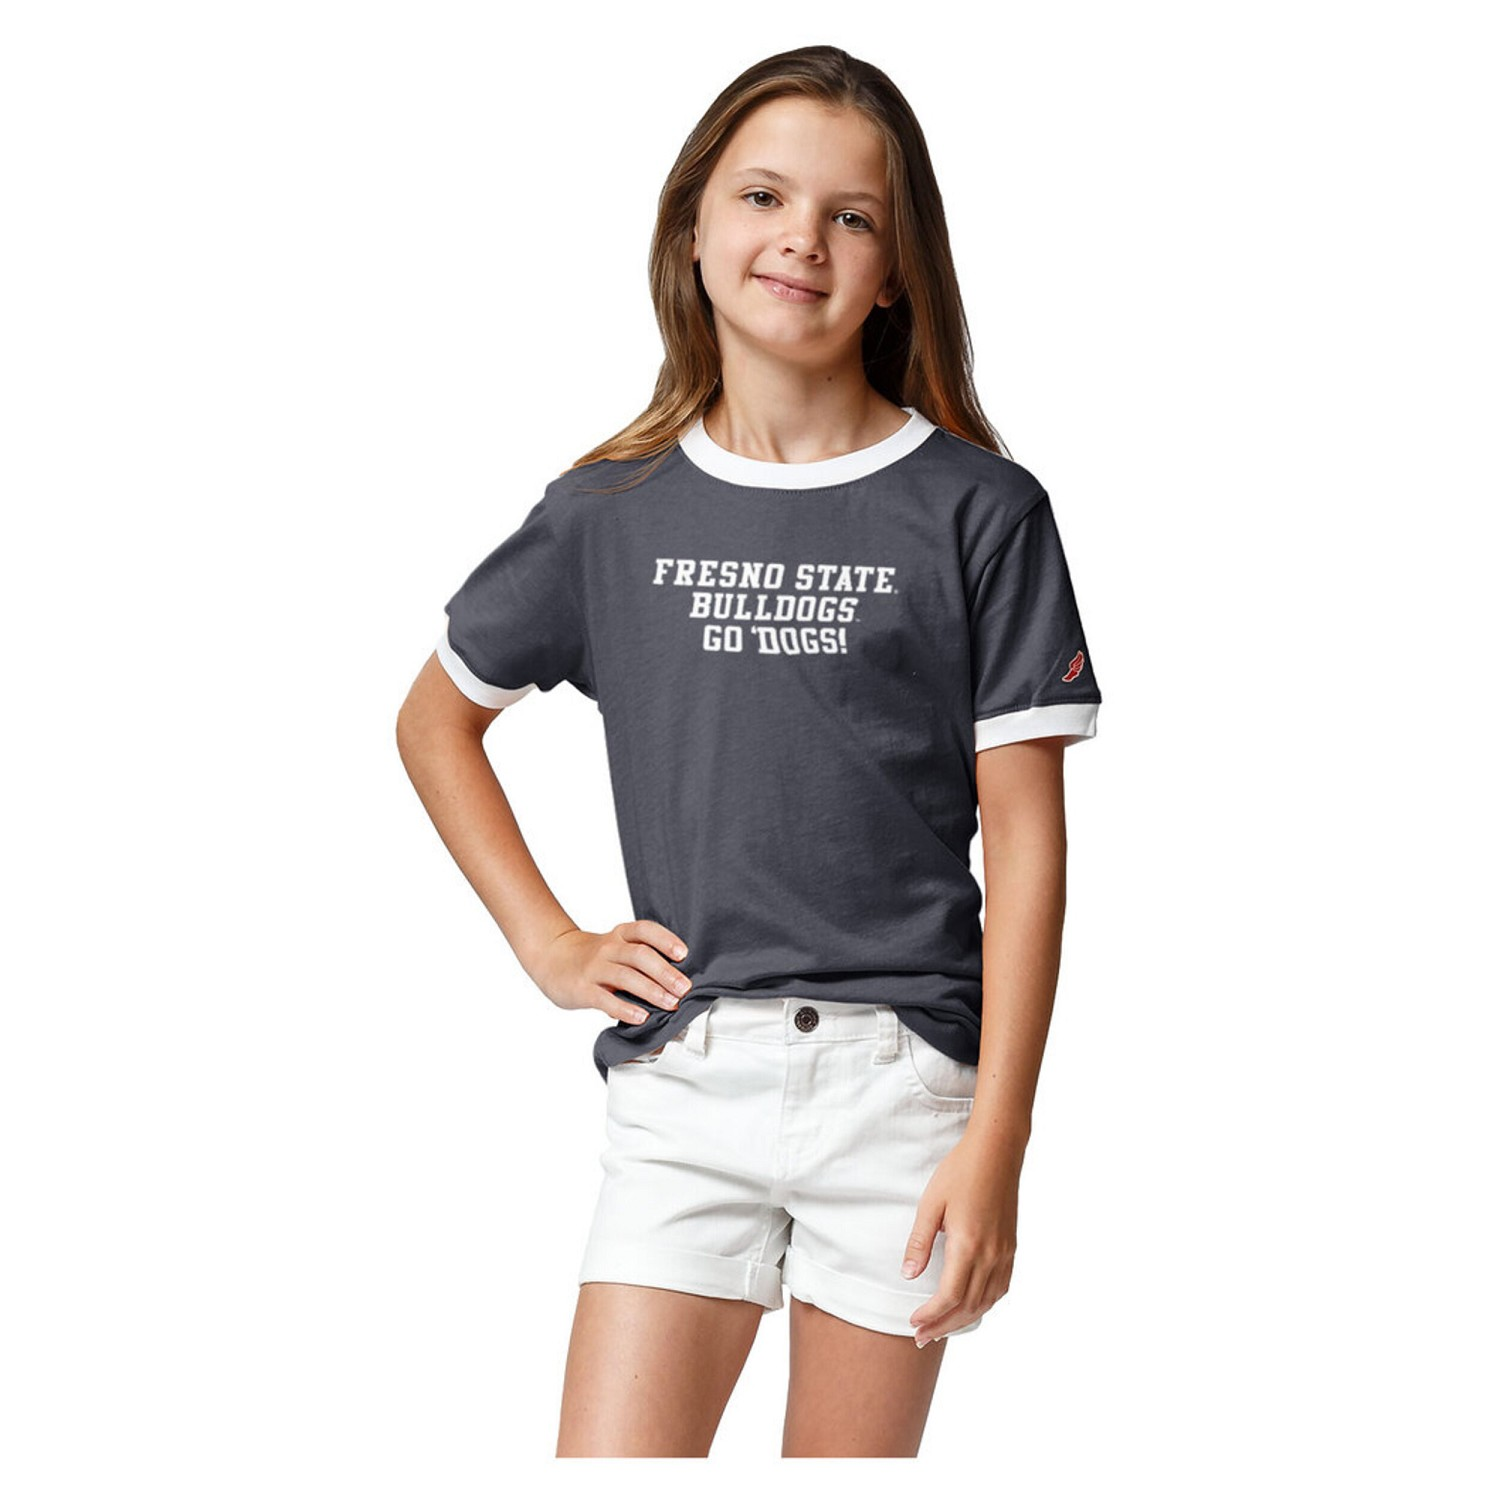 Fresno State League Girl's Camp Ringer T-Shirt